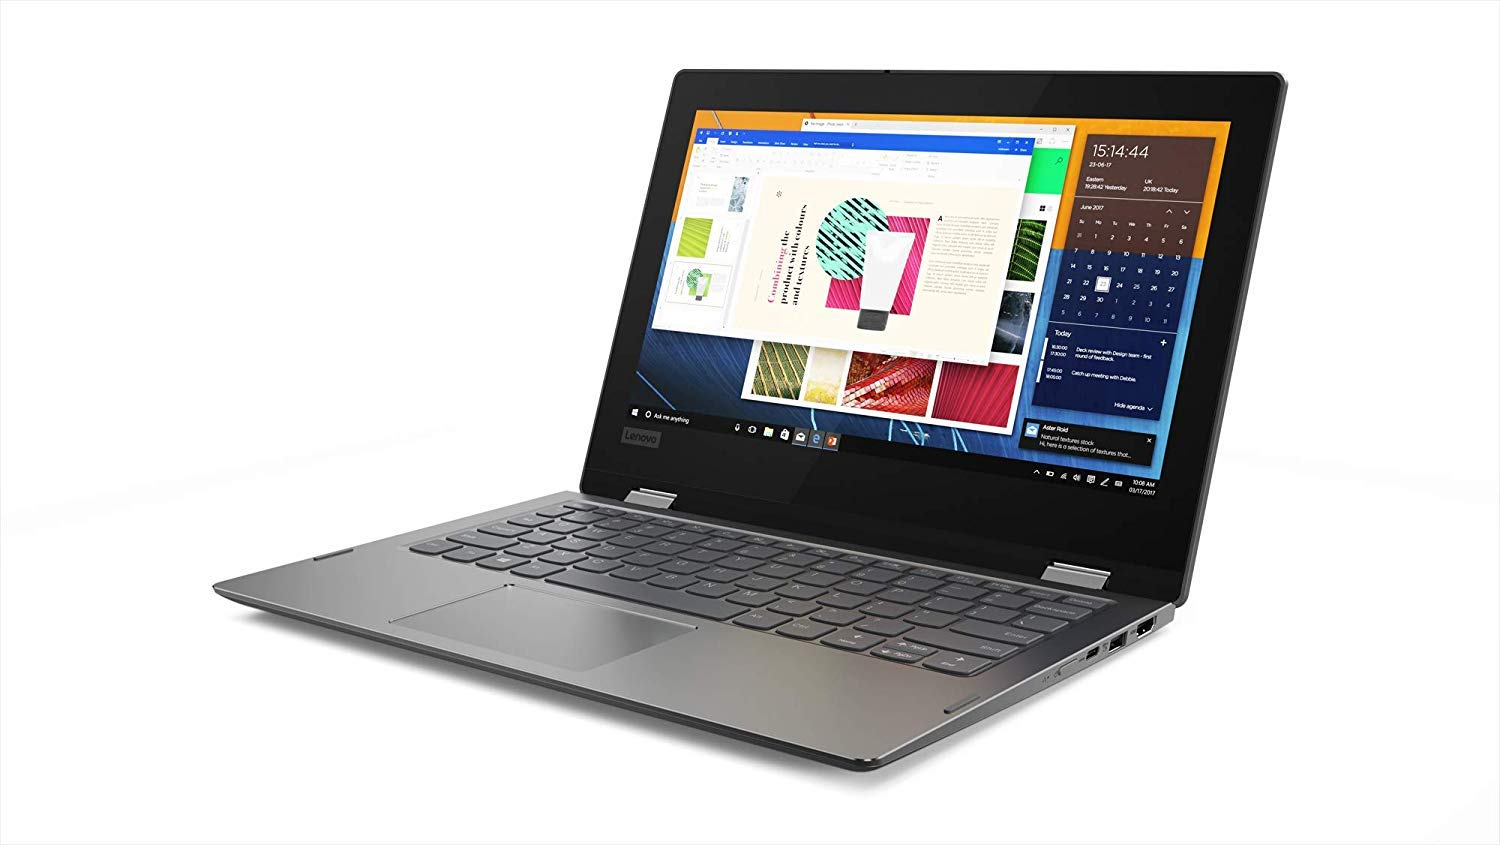 Lenovo Flex 11 Laptop, 11.6 Inch HD (1366 X 768) Display, Intel Pentium Silver N5000 Processor, 4GB DDR4 RAM, 64GB eMMC SSD, Intel UHD Graphics 605, Windows 10, 81A7000BUS, Onyx Black